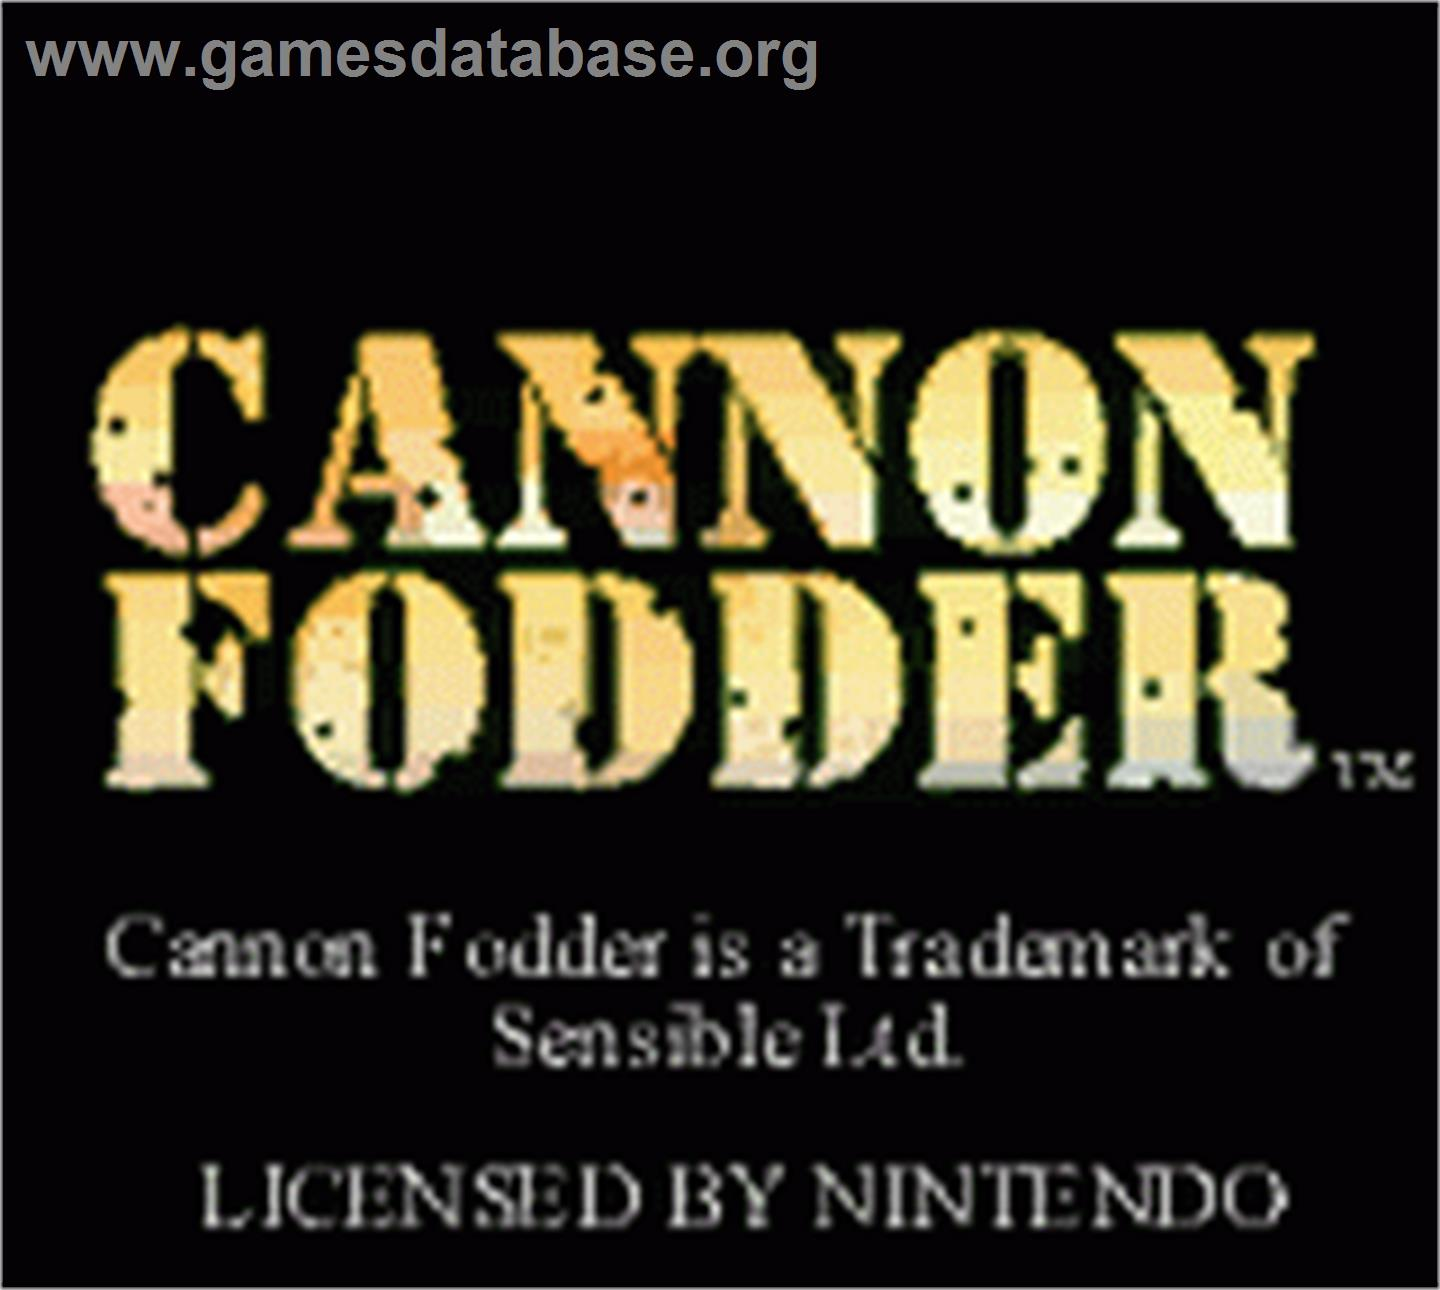 Cannon Fodder - Nintendo Game Boy Color - Artwork - Title Screen